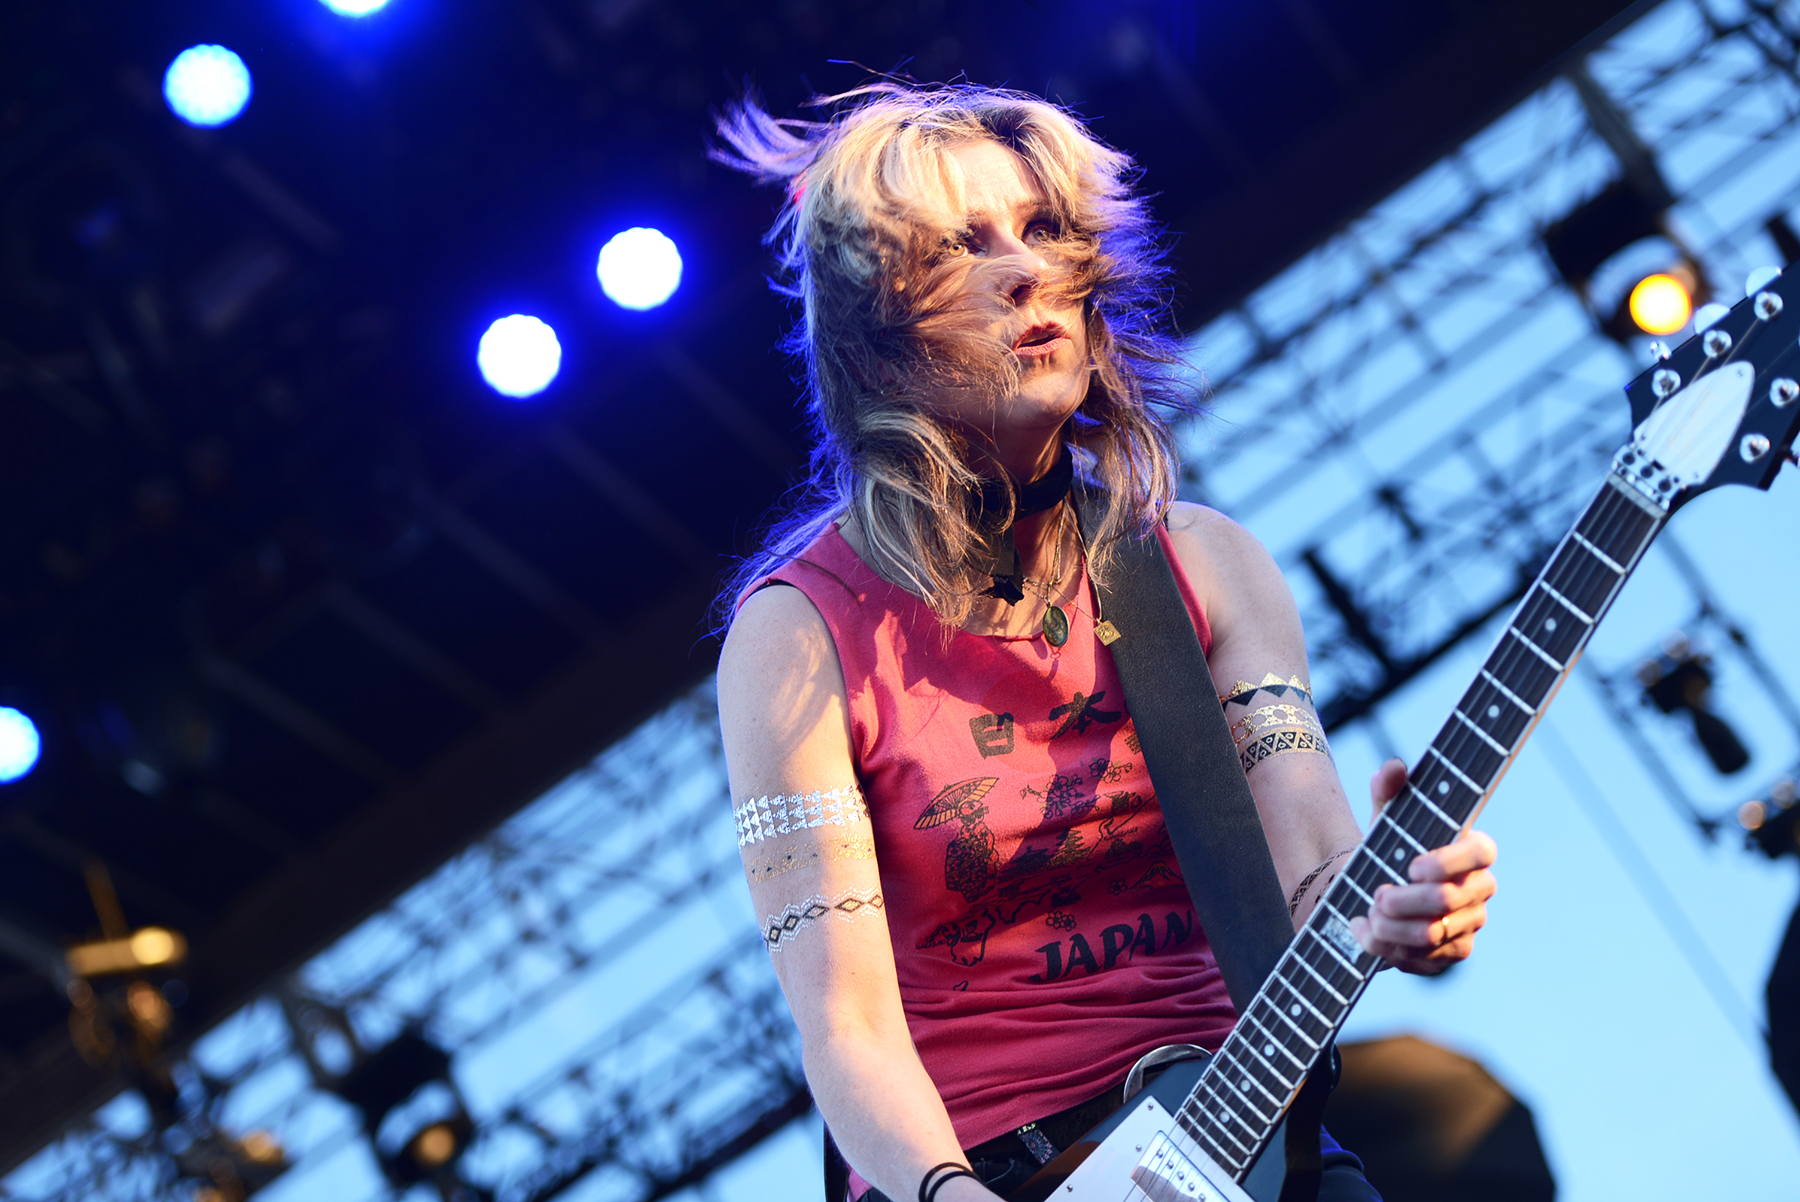 L7_riotfest_chicago_2015_2.jpg.jpg